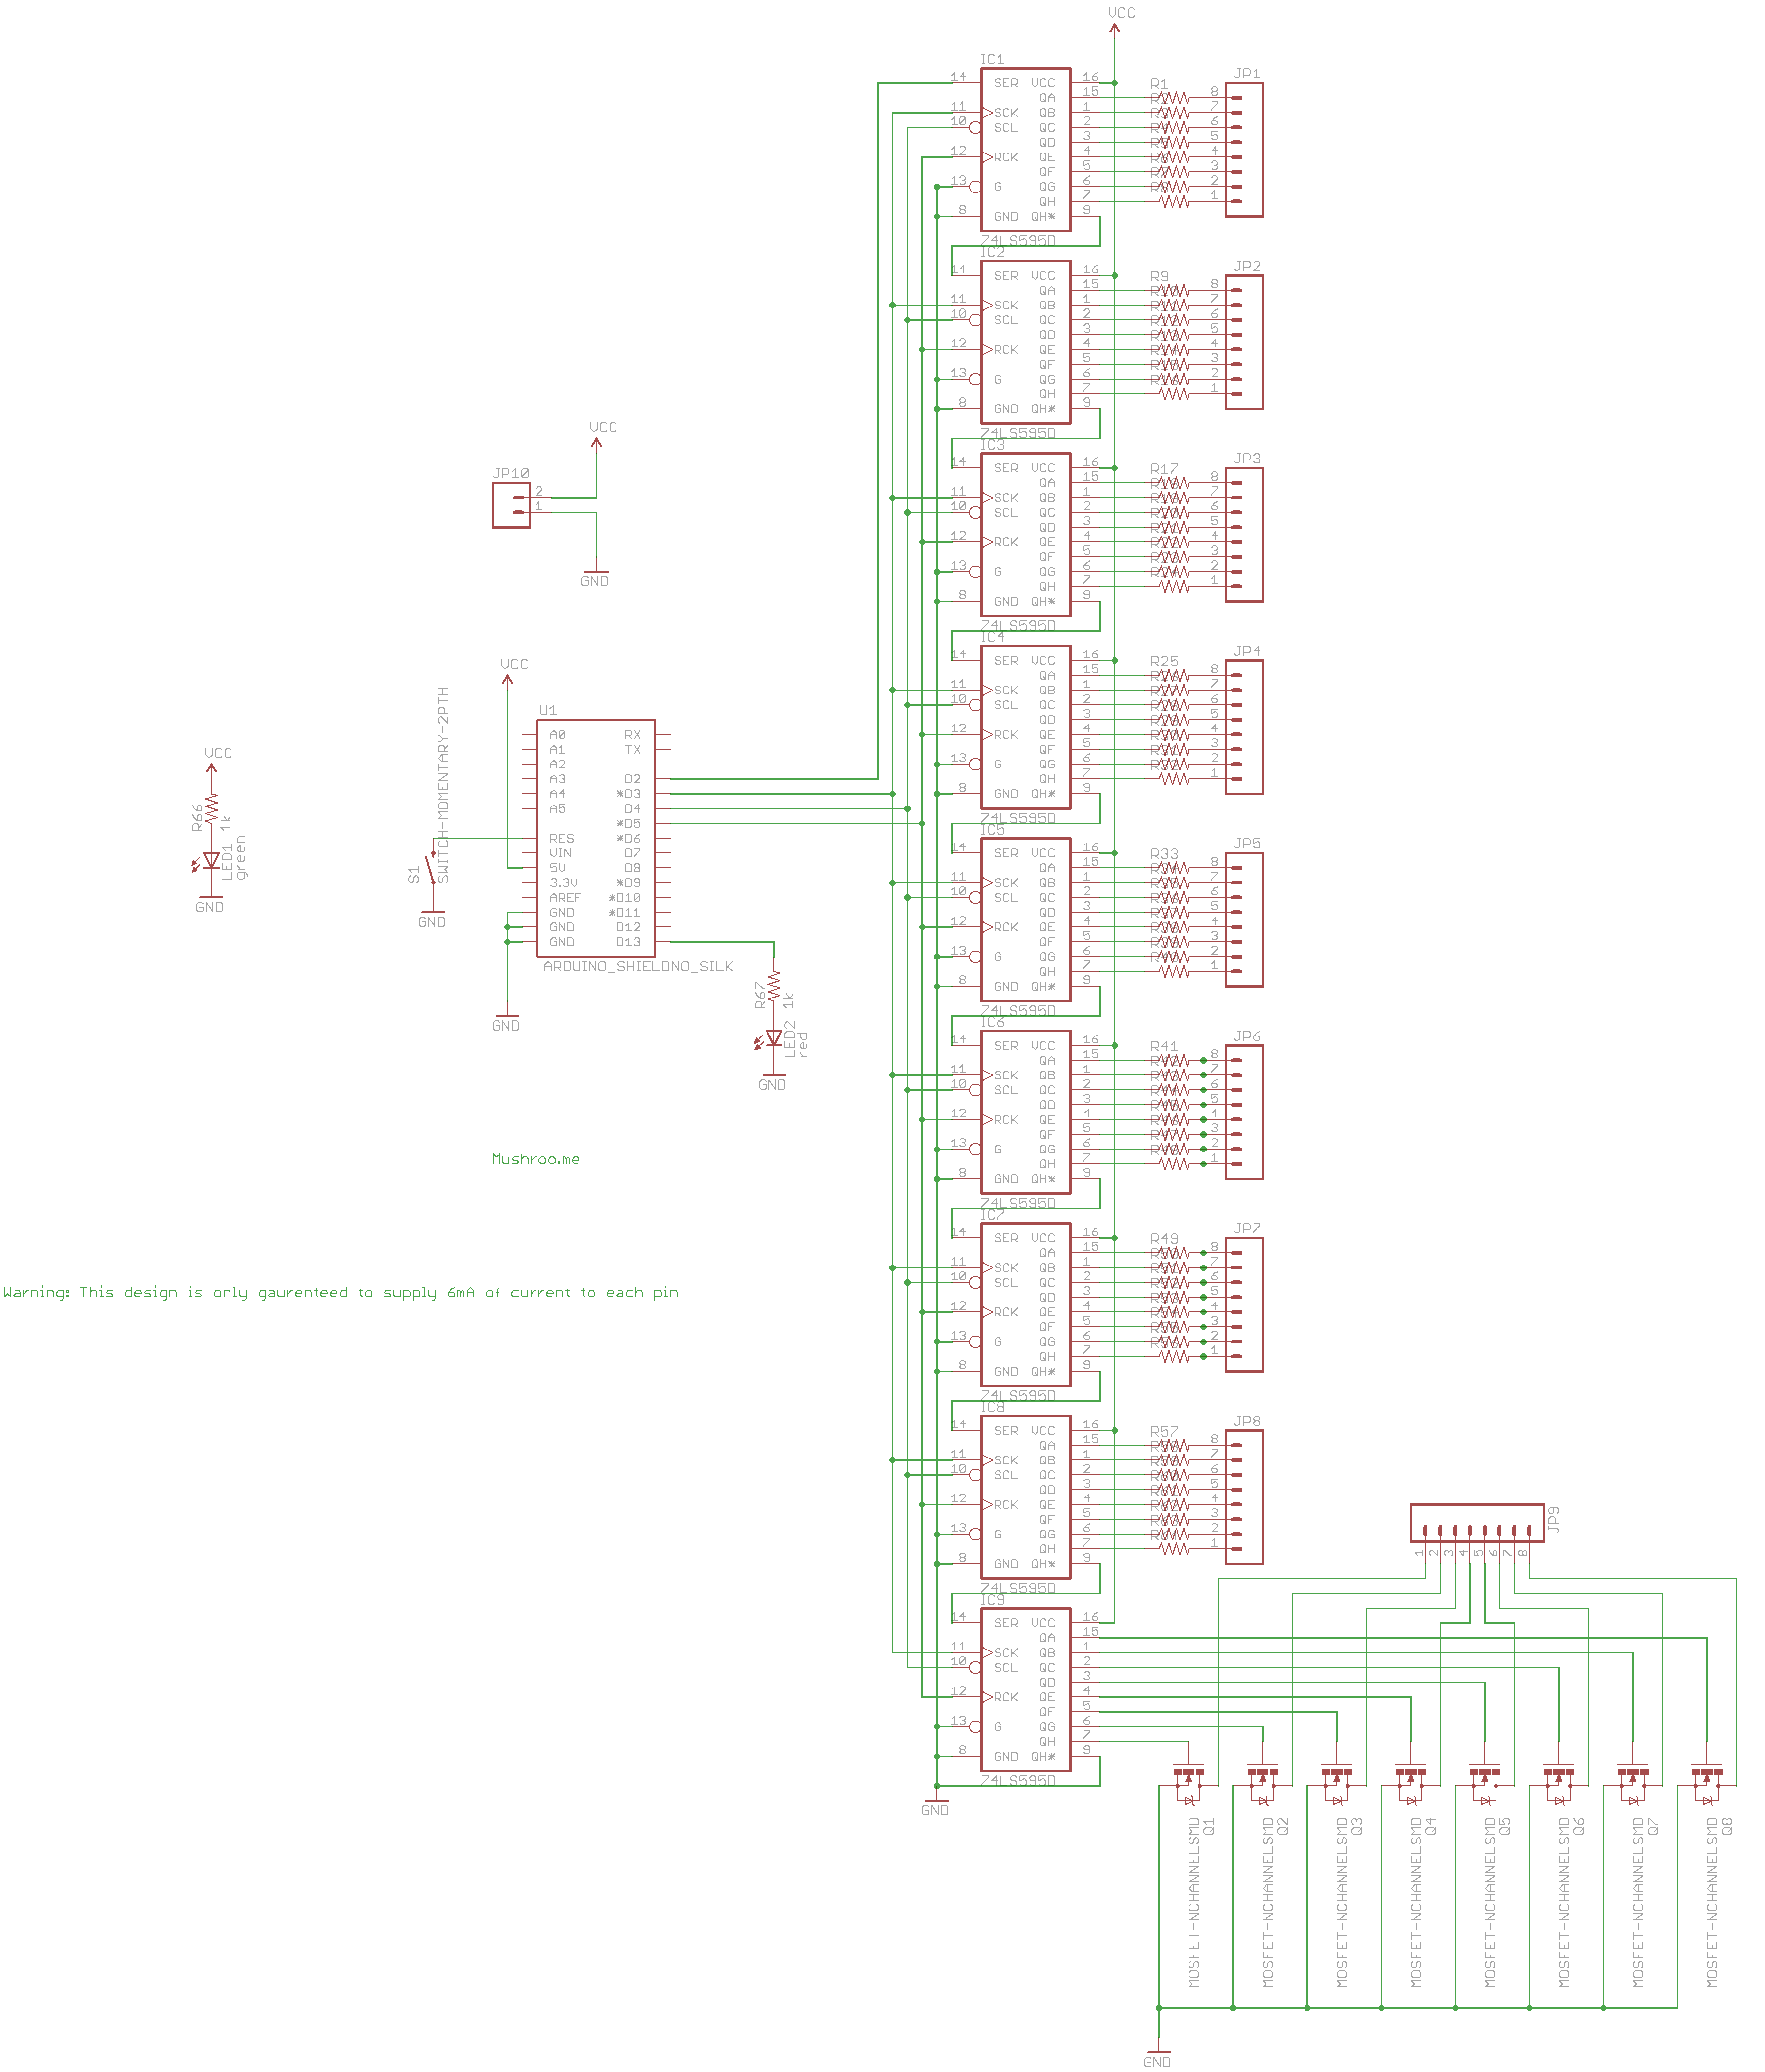 Arduino expansion board used for controlling large numbers of LEDs